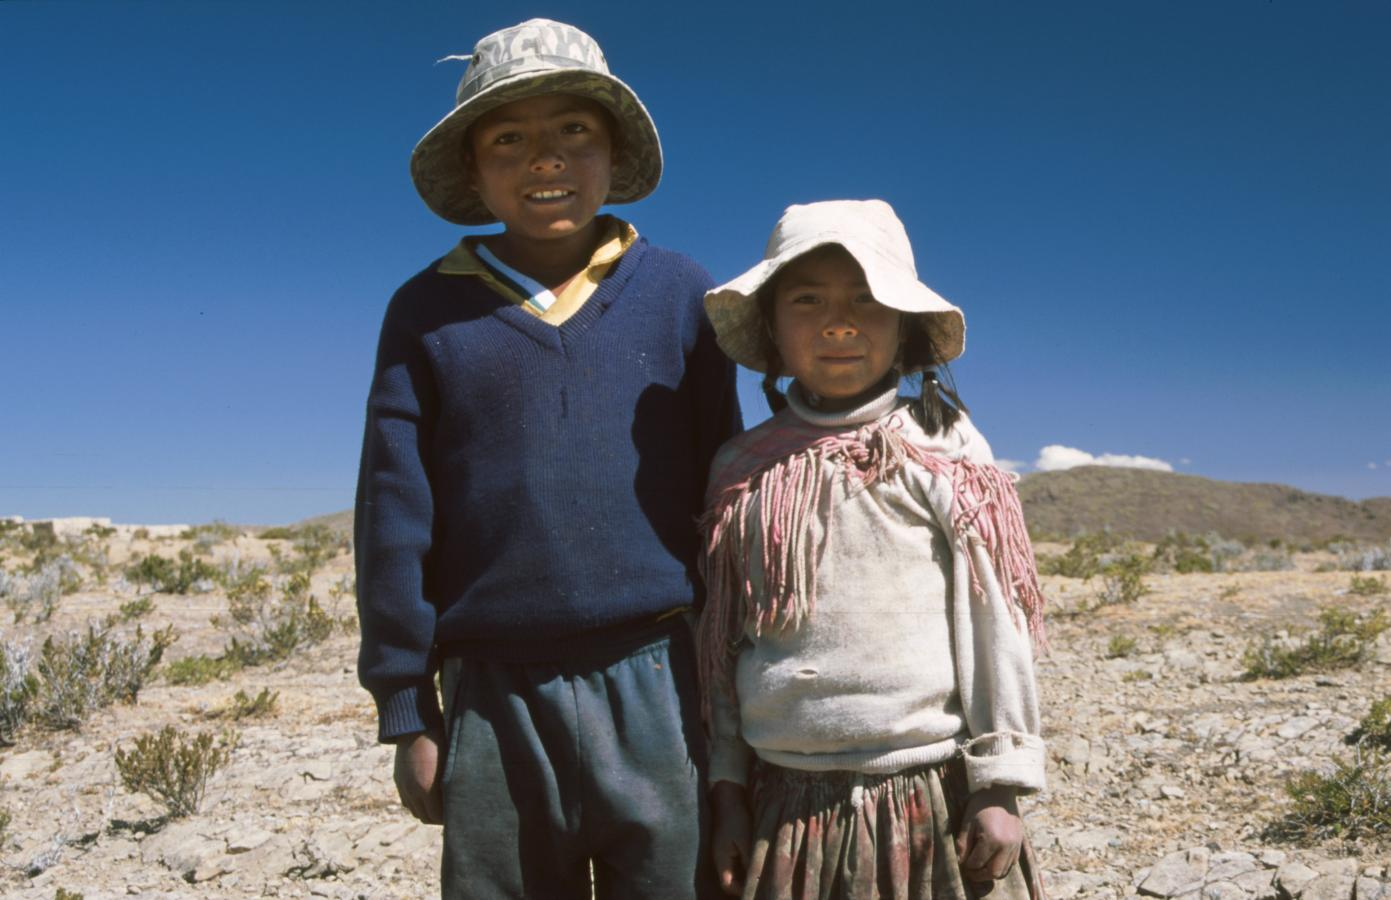 children-around-cusco-peru-2001